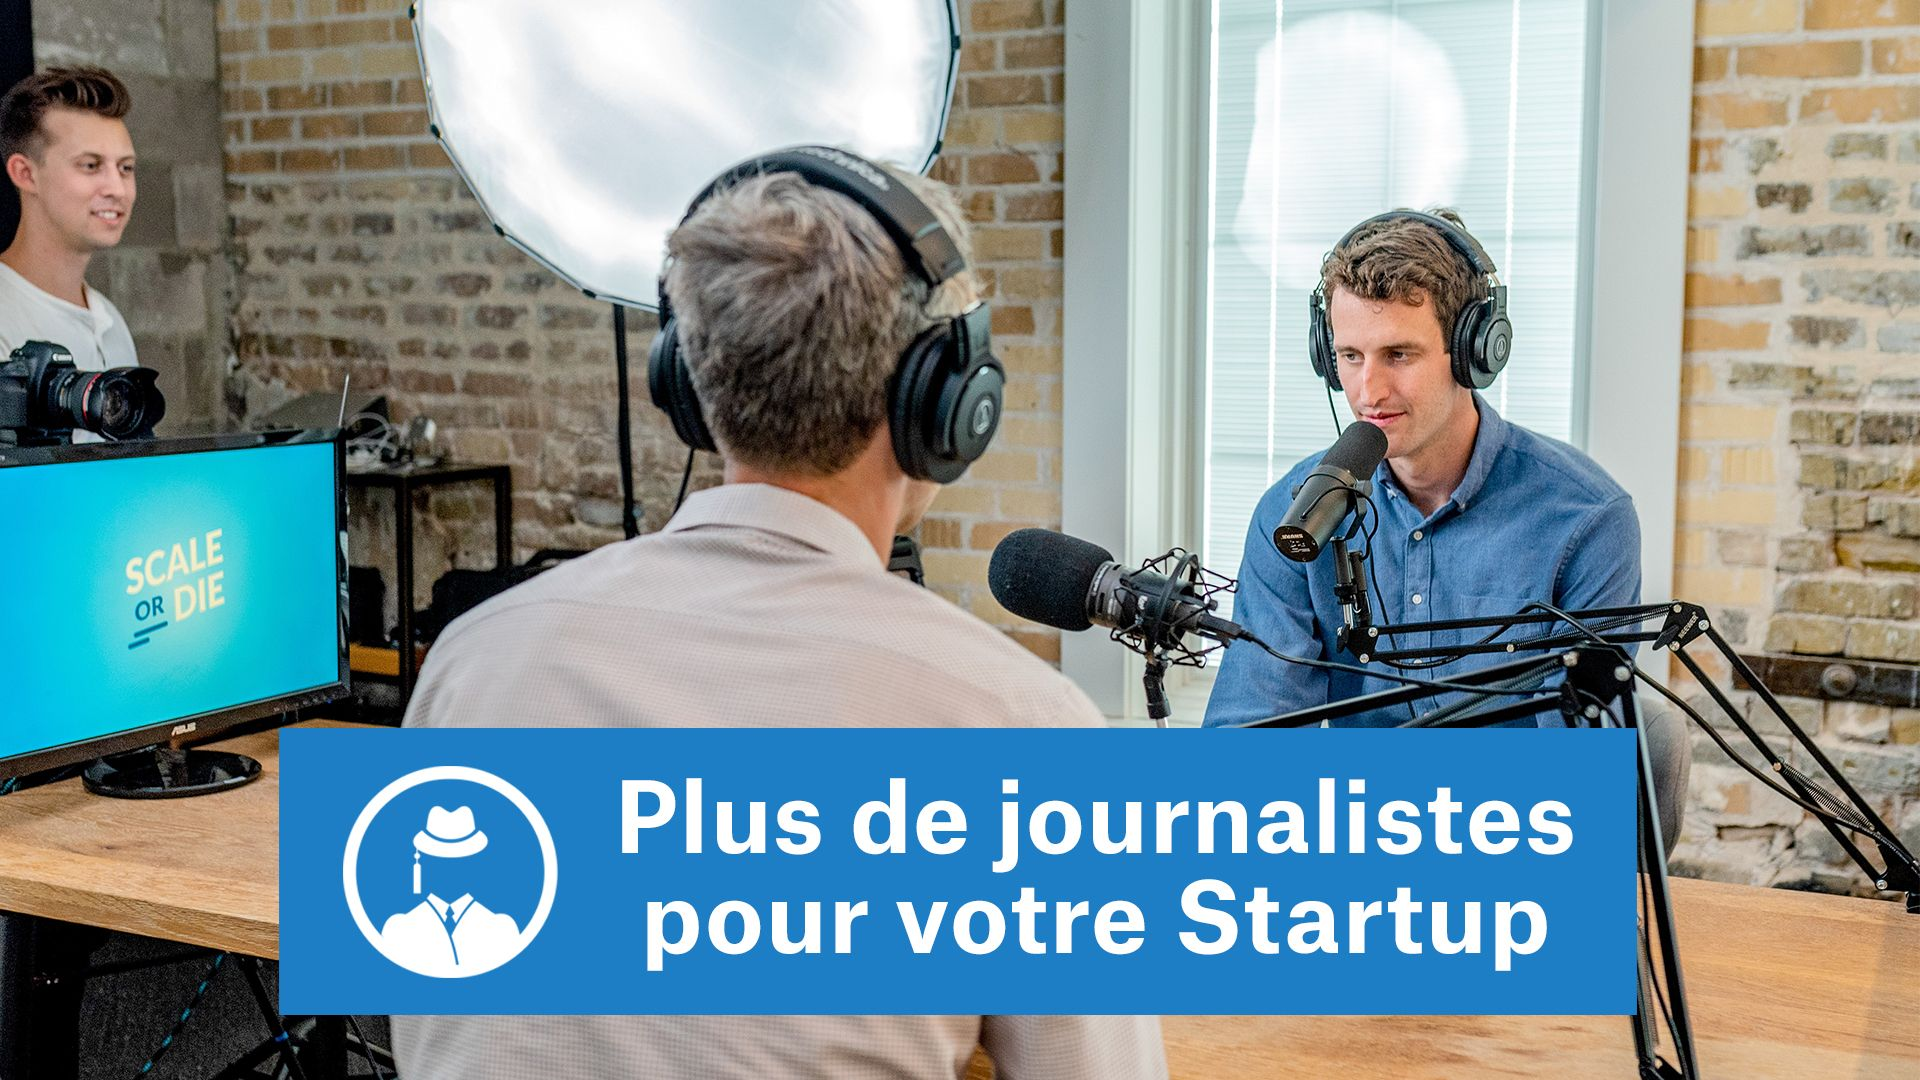 Plus de journalistes pour votre startup #GrowthHacking #WebMarketing #FormationGrowthHacking #CentreDeFormationFrance #TunnelAARRR #AARRR #SocialMedia #CommunityManagement #SEO #SiteWeb